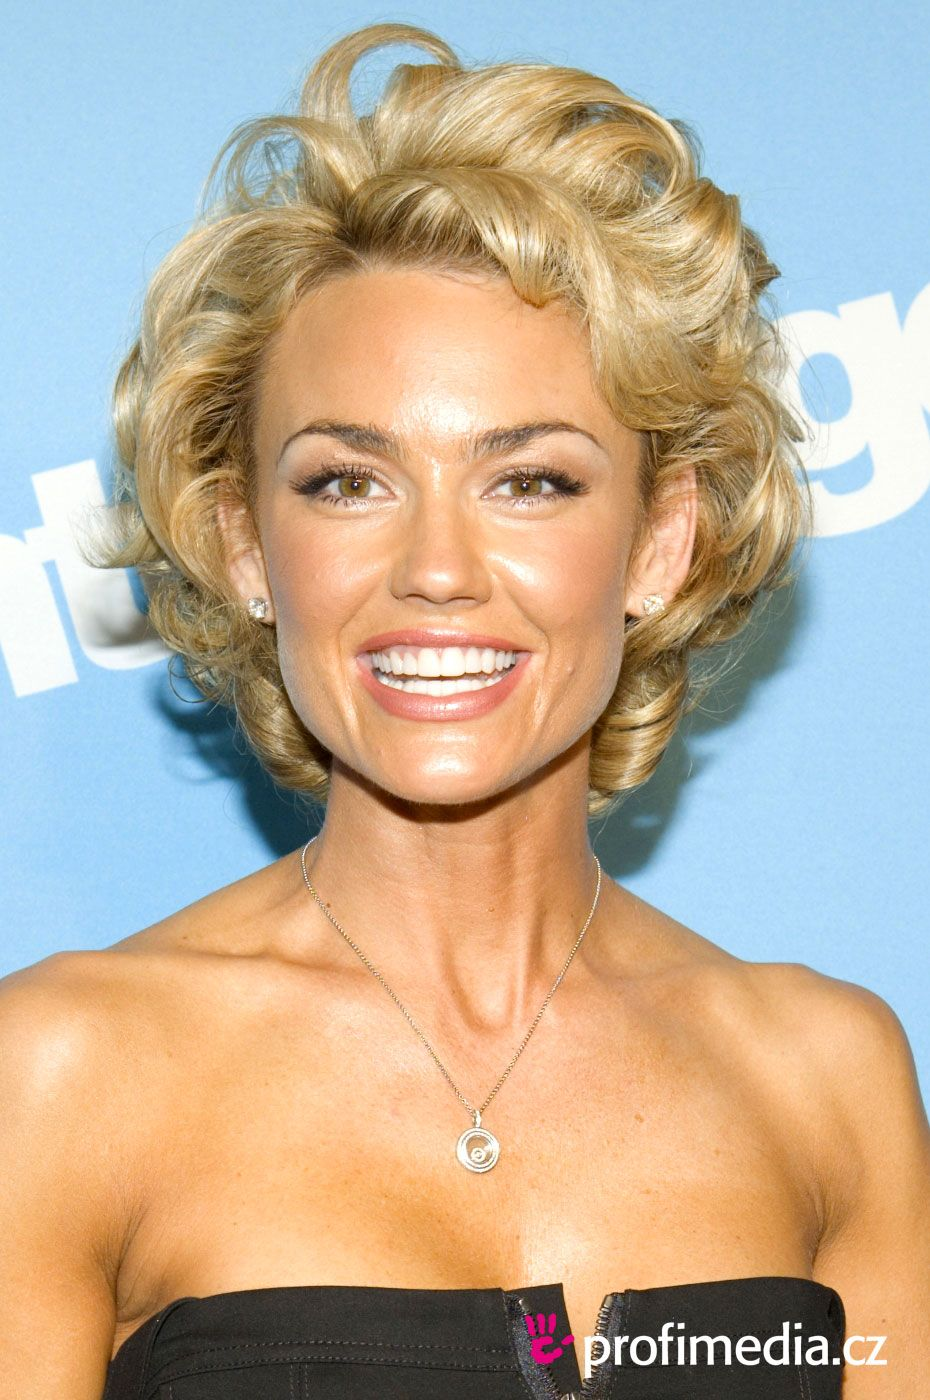 kelly carlson 2016kelly carlson 2016, kelly carlson wdw, kelly carlson imdb, kelly carlson photo, kelly carlson instagram, kelly carlson official instagram, kelly carlson, kelly carlson 2015, kelly carlson husband, kelly carlson twitter, kelly carlson wiki, kelly carlson married, kelly carlson net worth